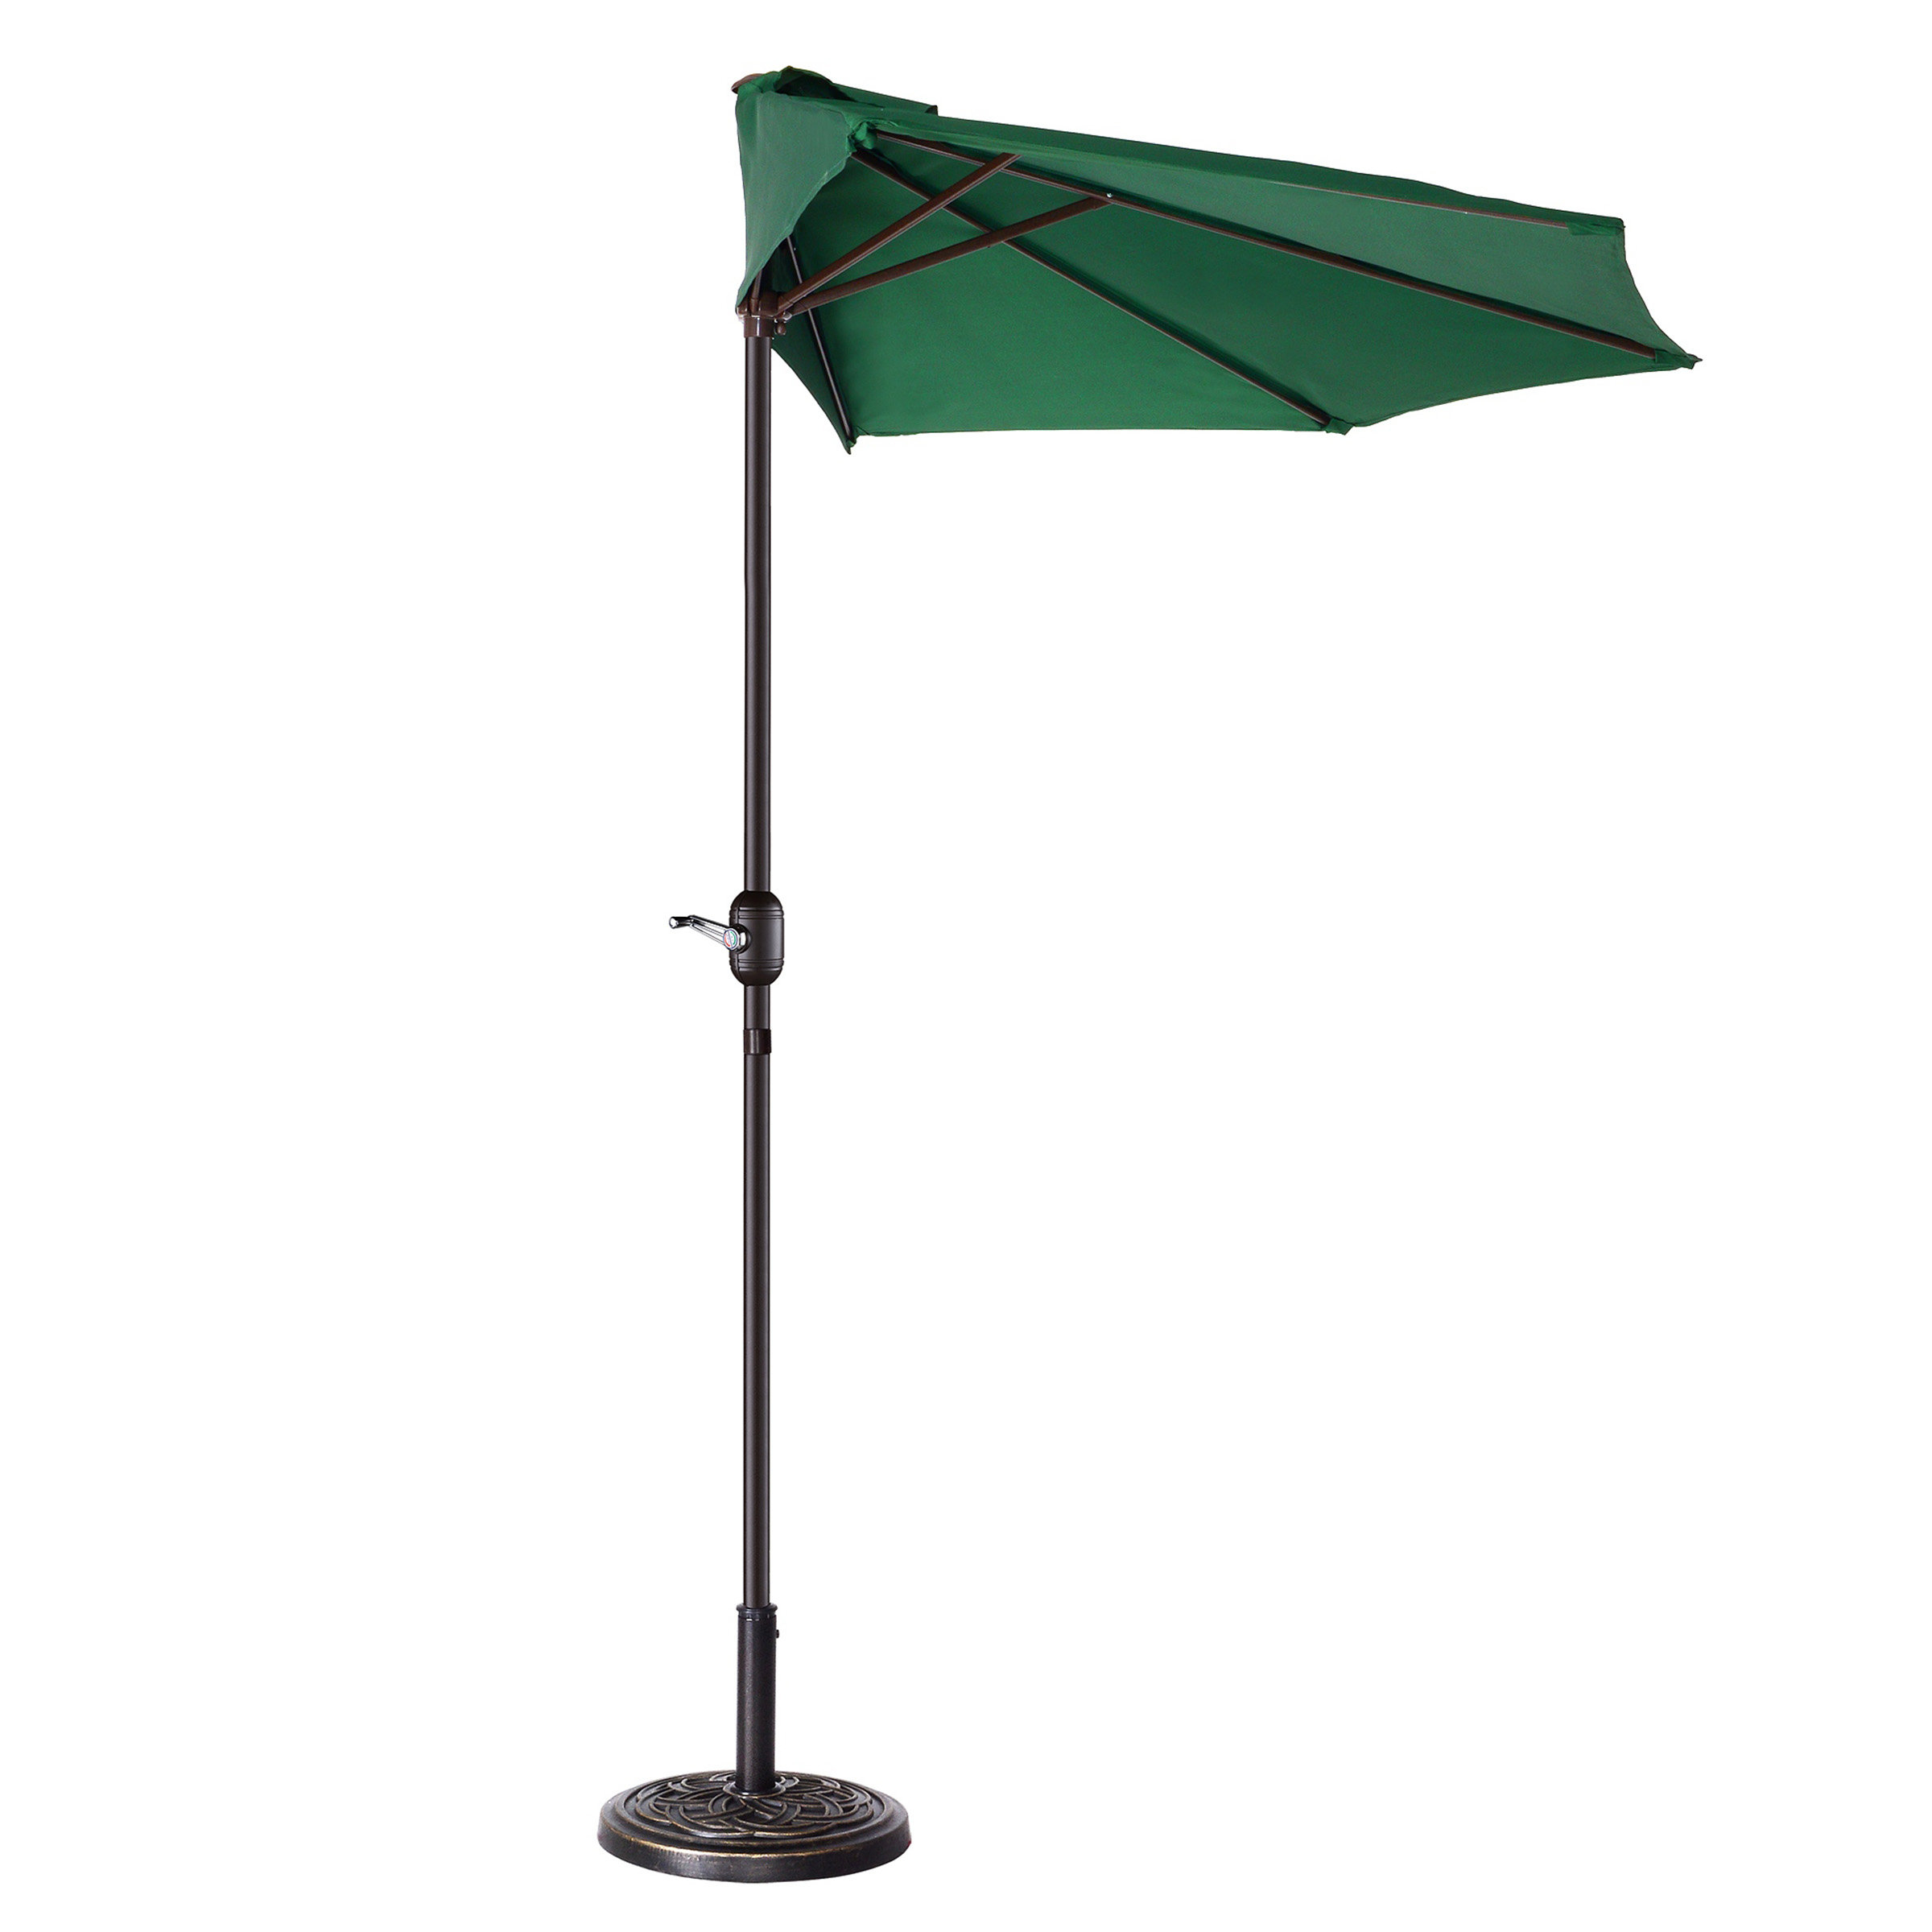 Preferred Dade City North Half Market Umbrellas Within Colburn Half 9' Market Umbrella (View 8 of 20)